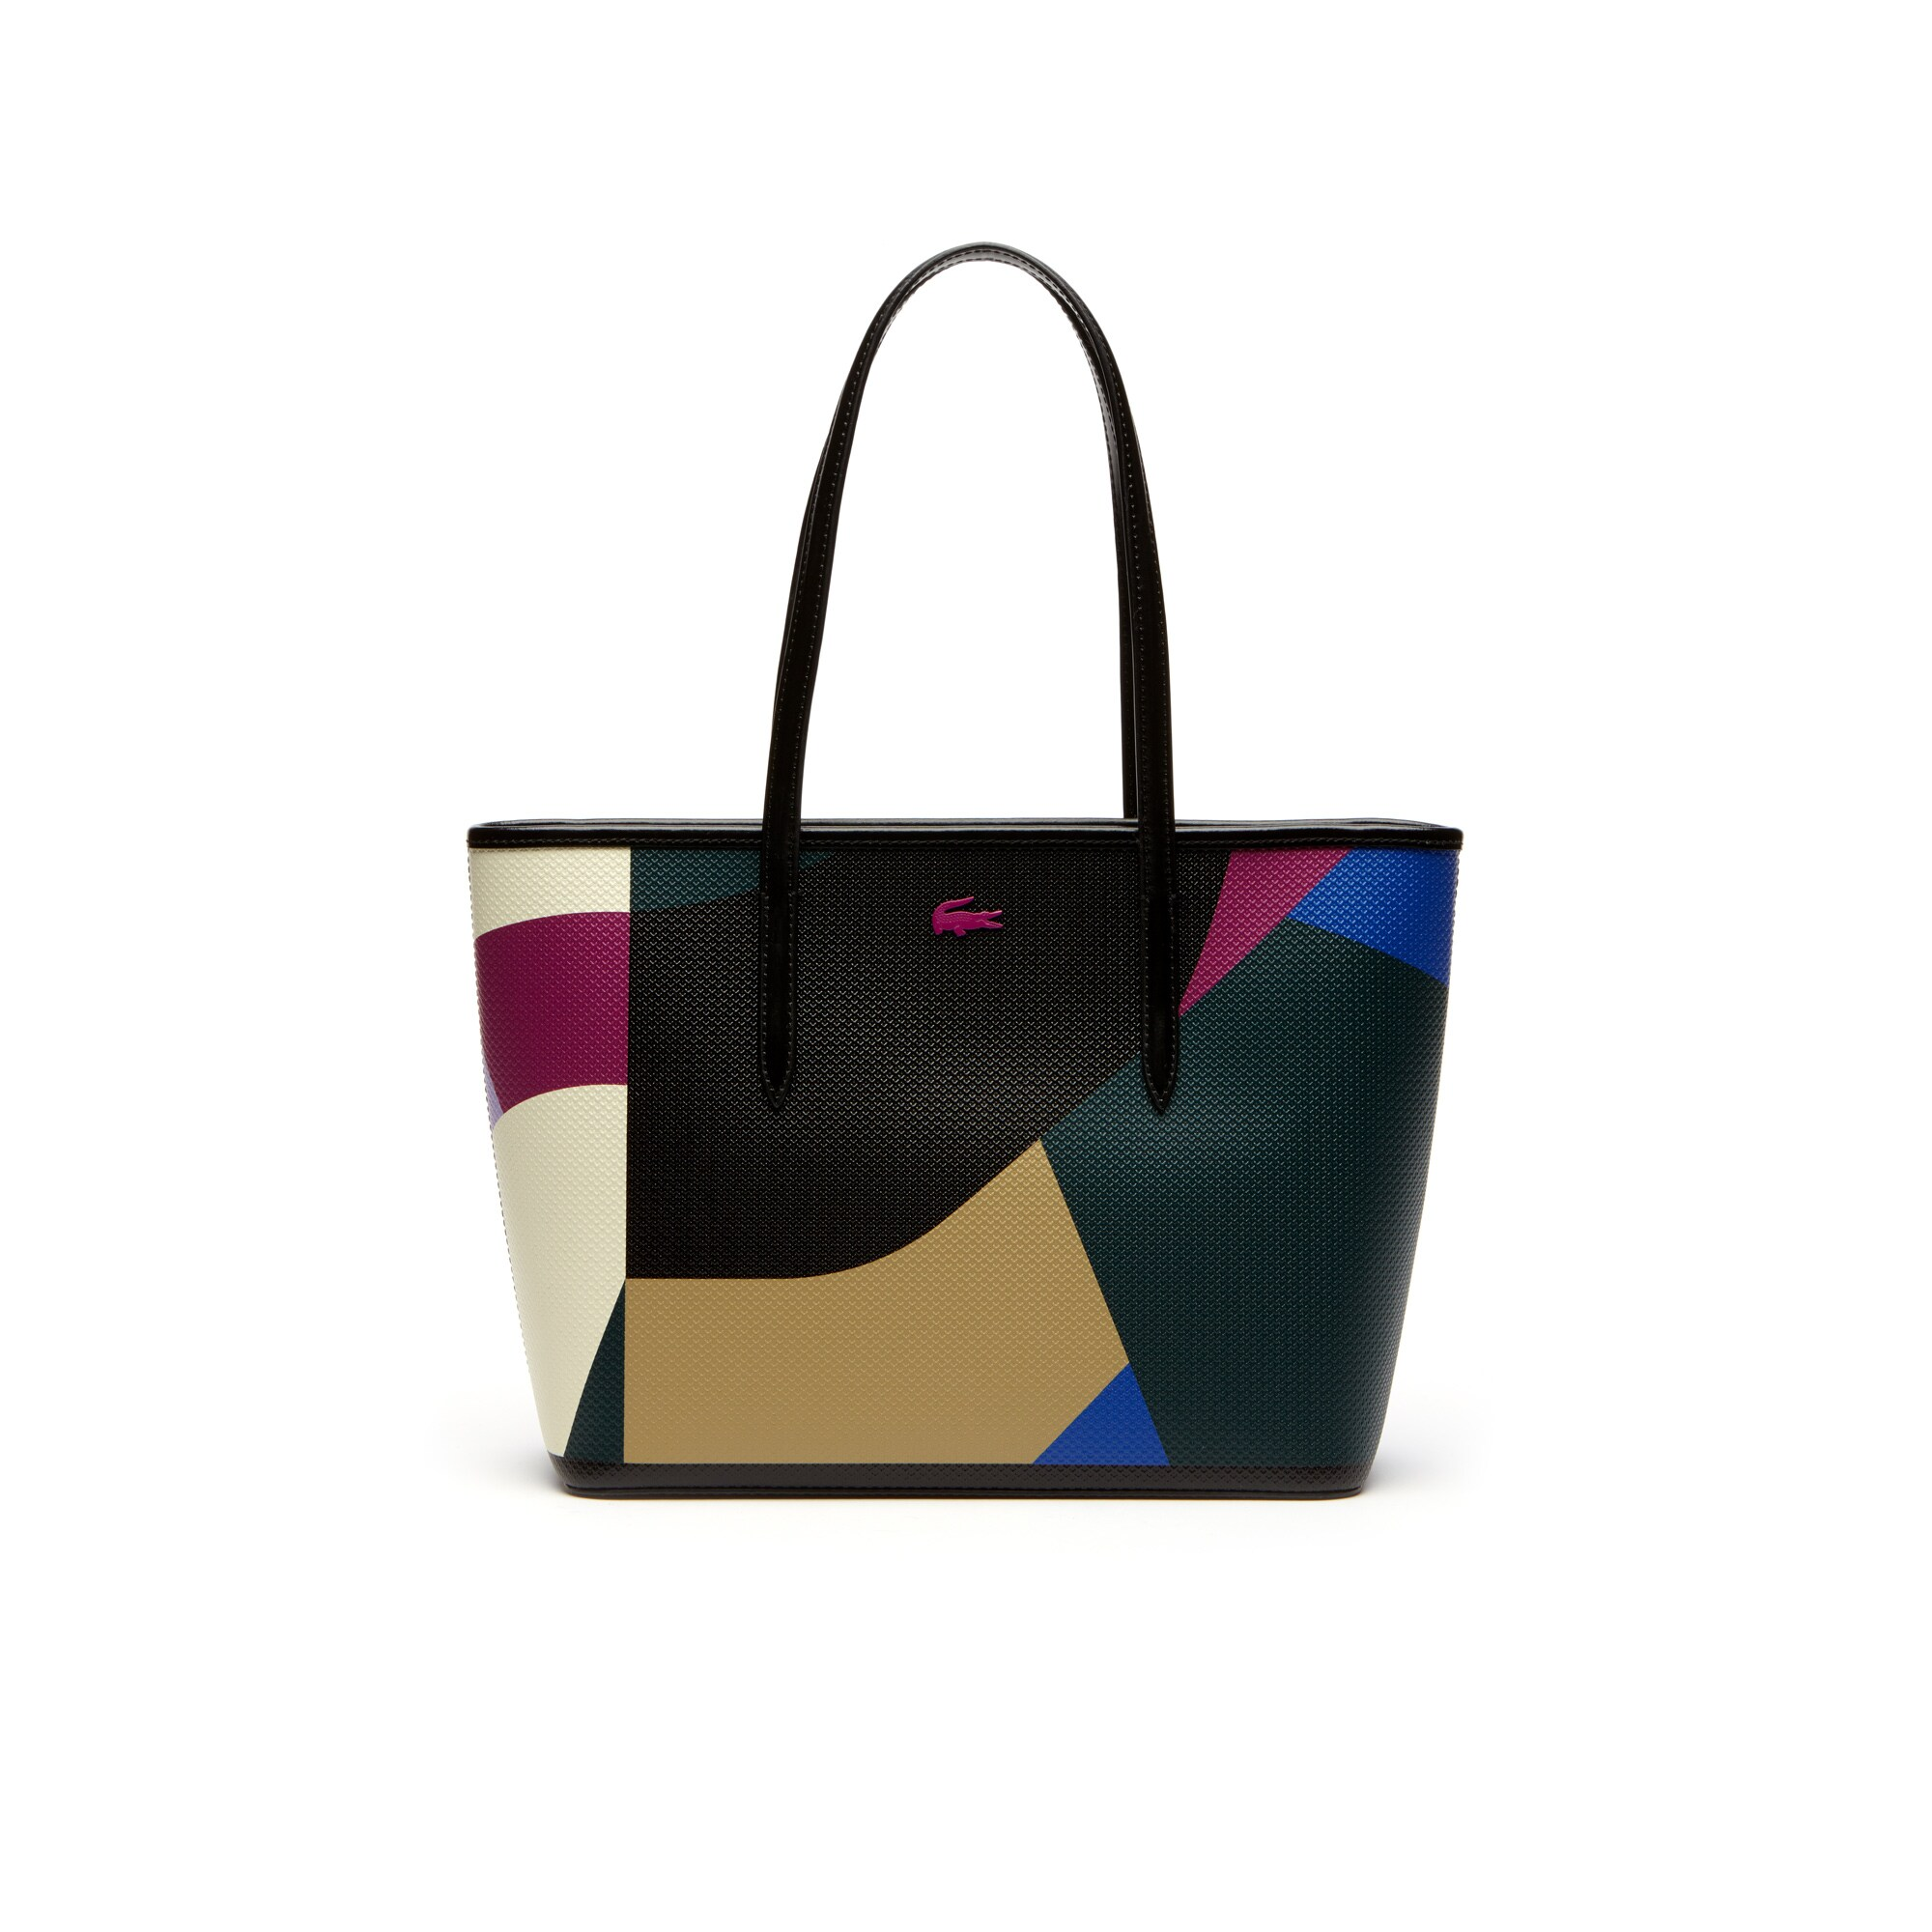 Chantaco-shopper dames leer met colorblock-print en rits